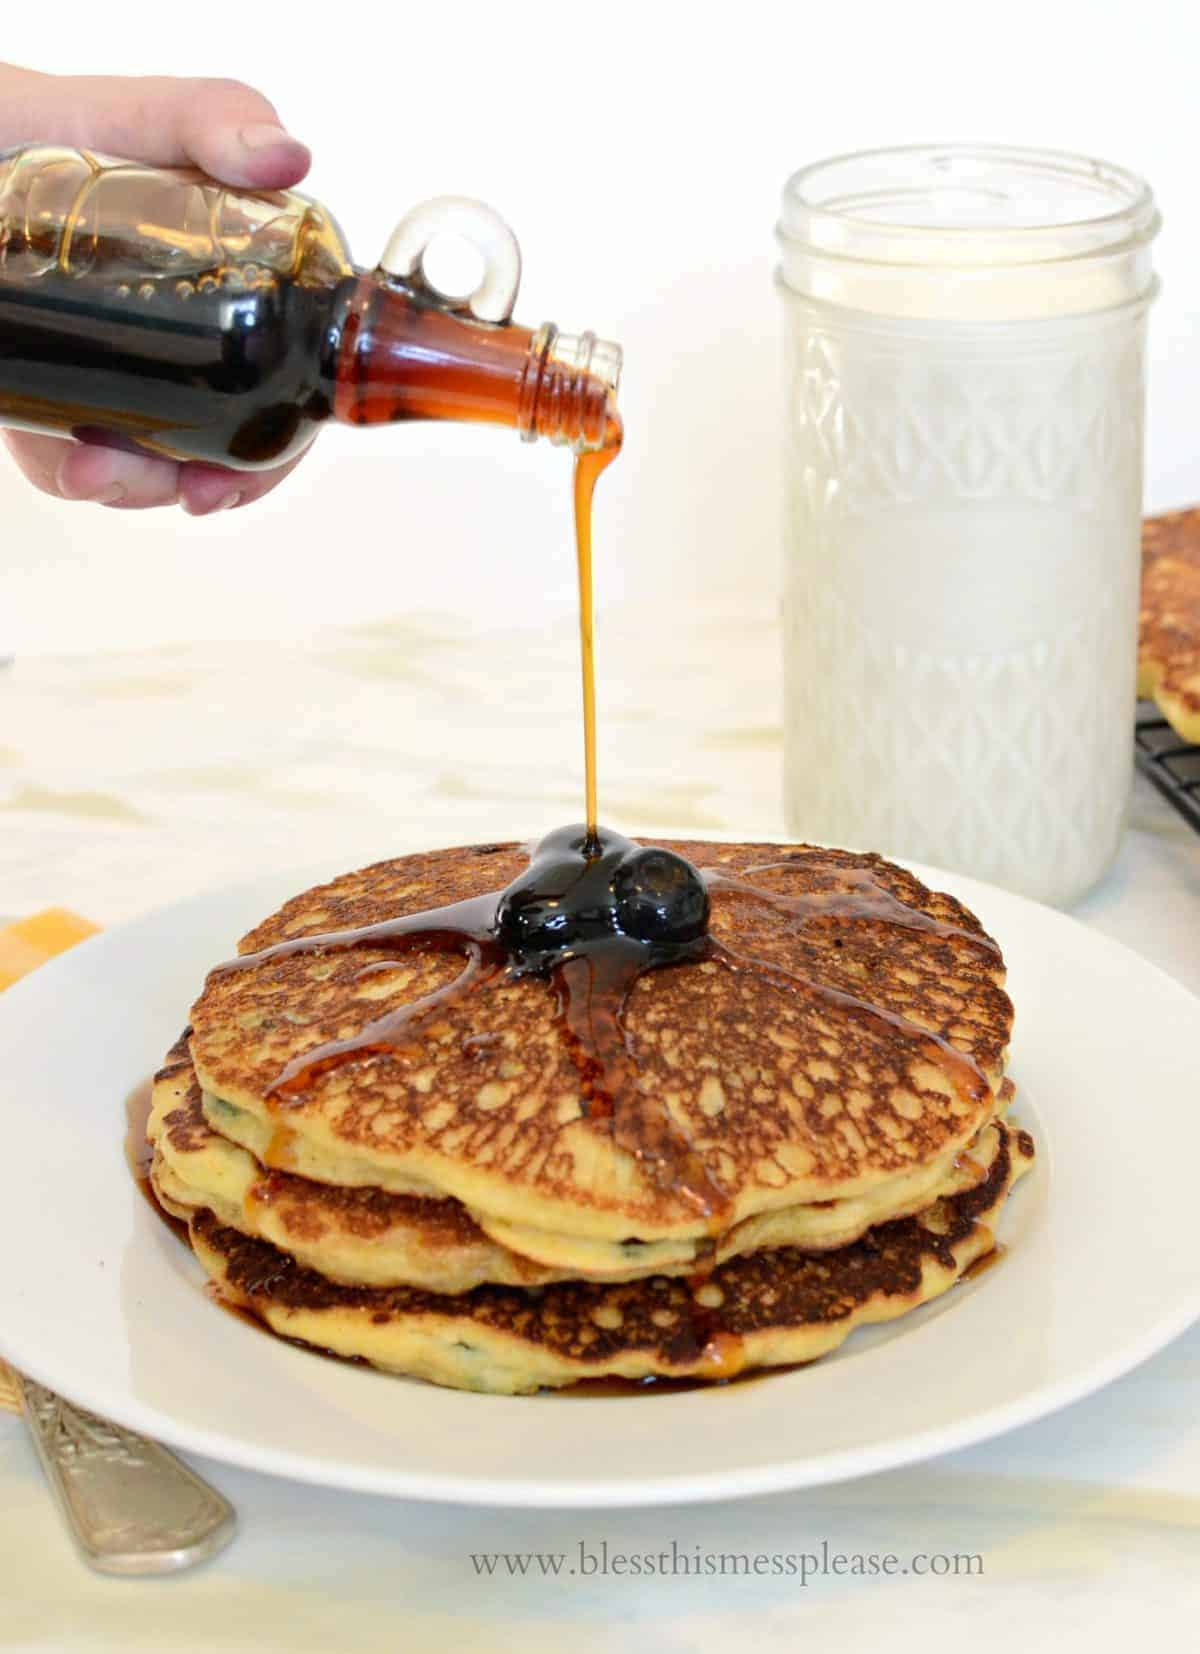 Blueberry Cornmeal Pancakes - Bless This Mess